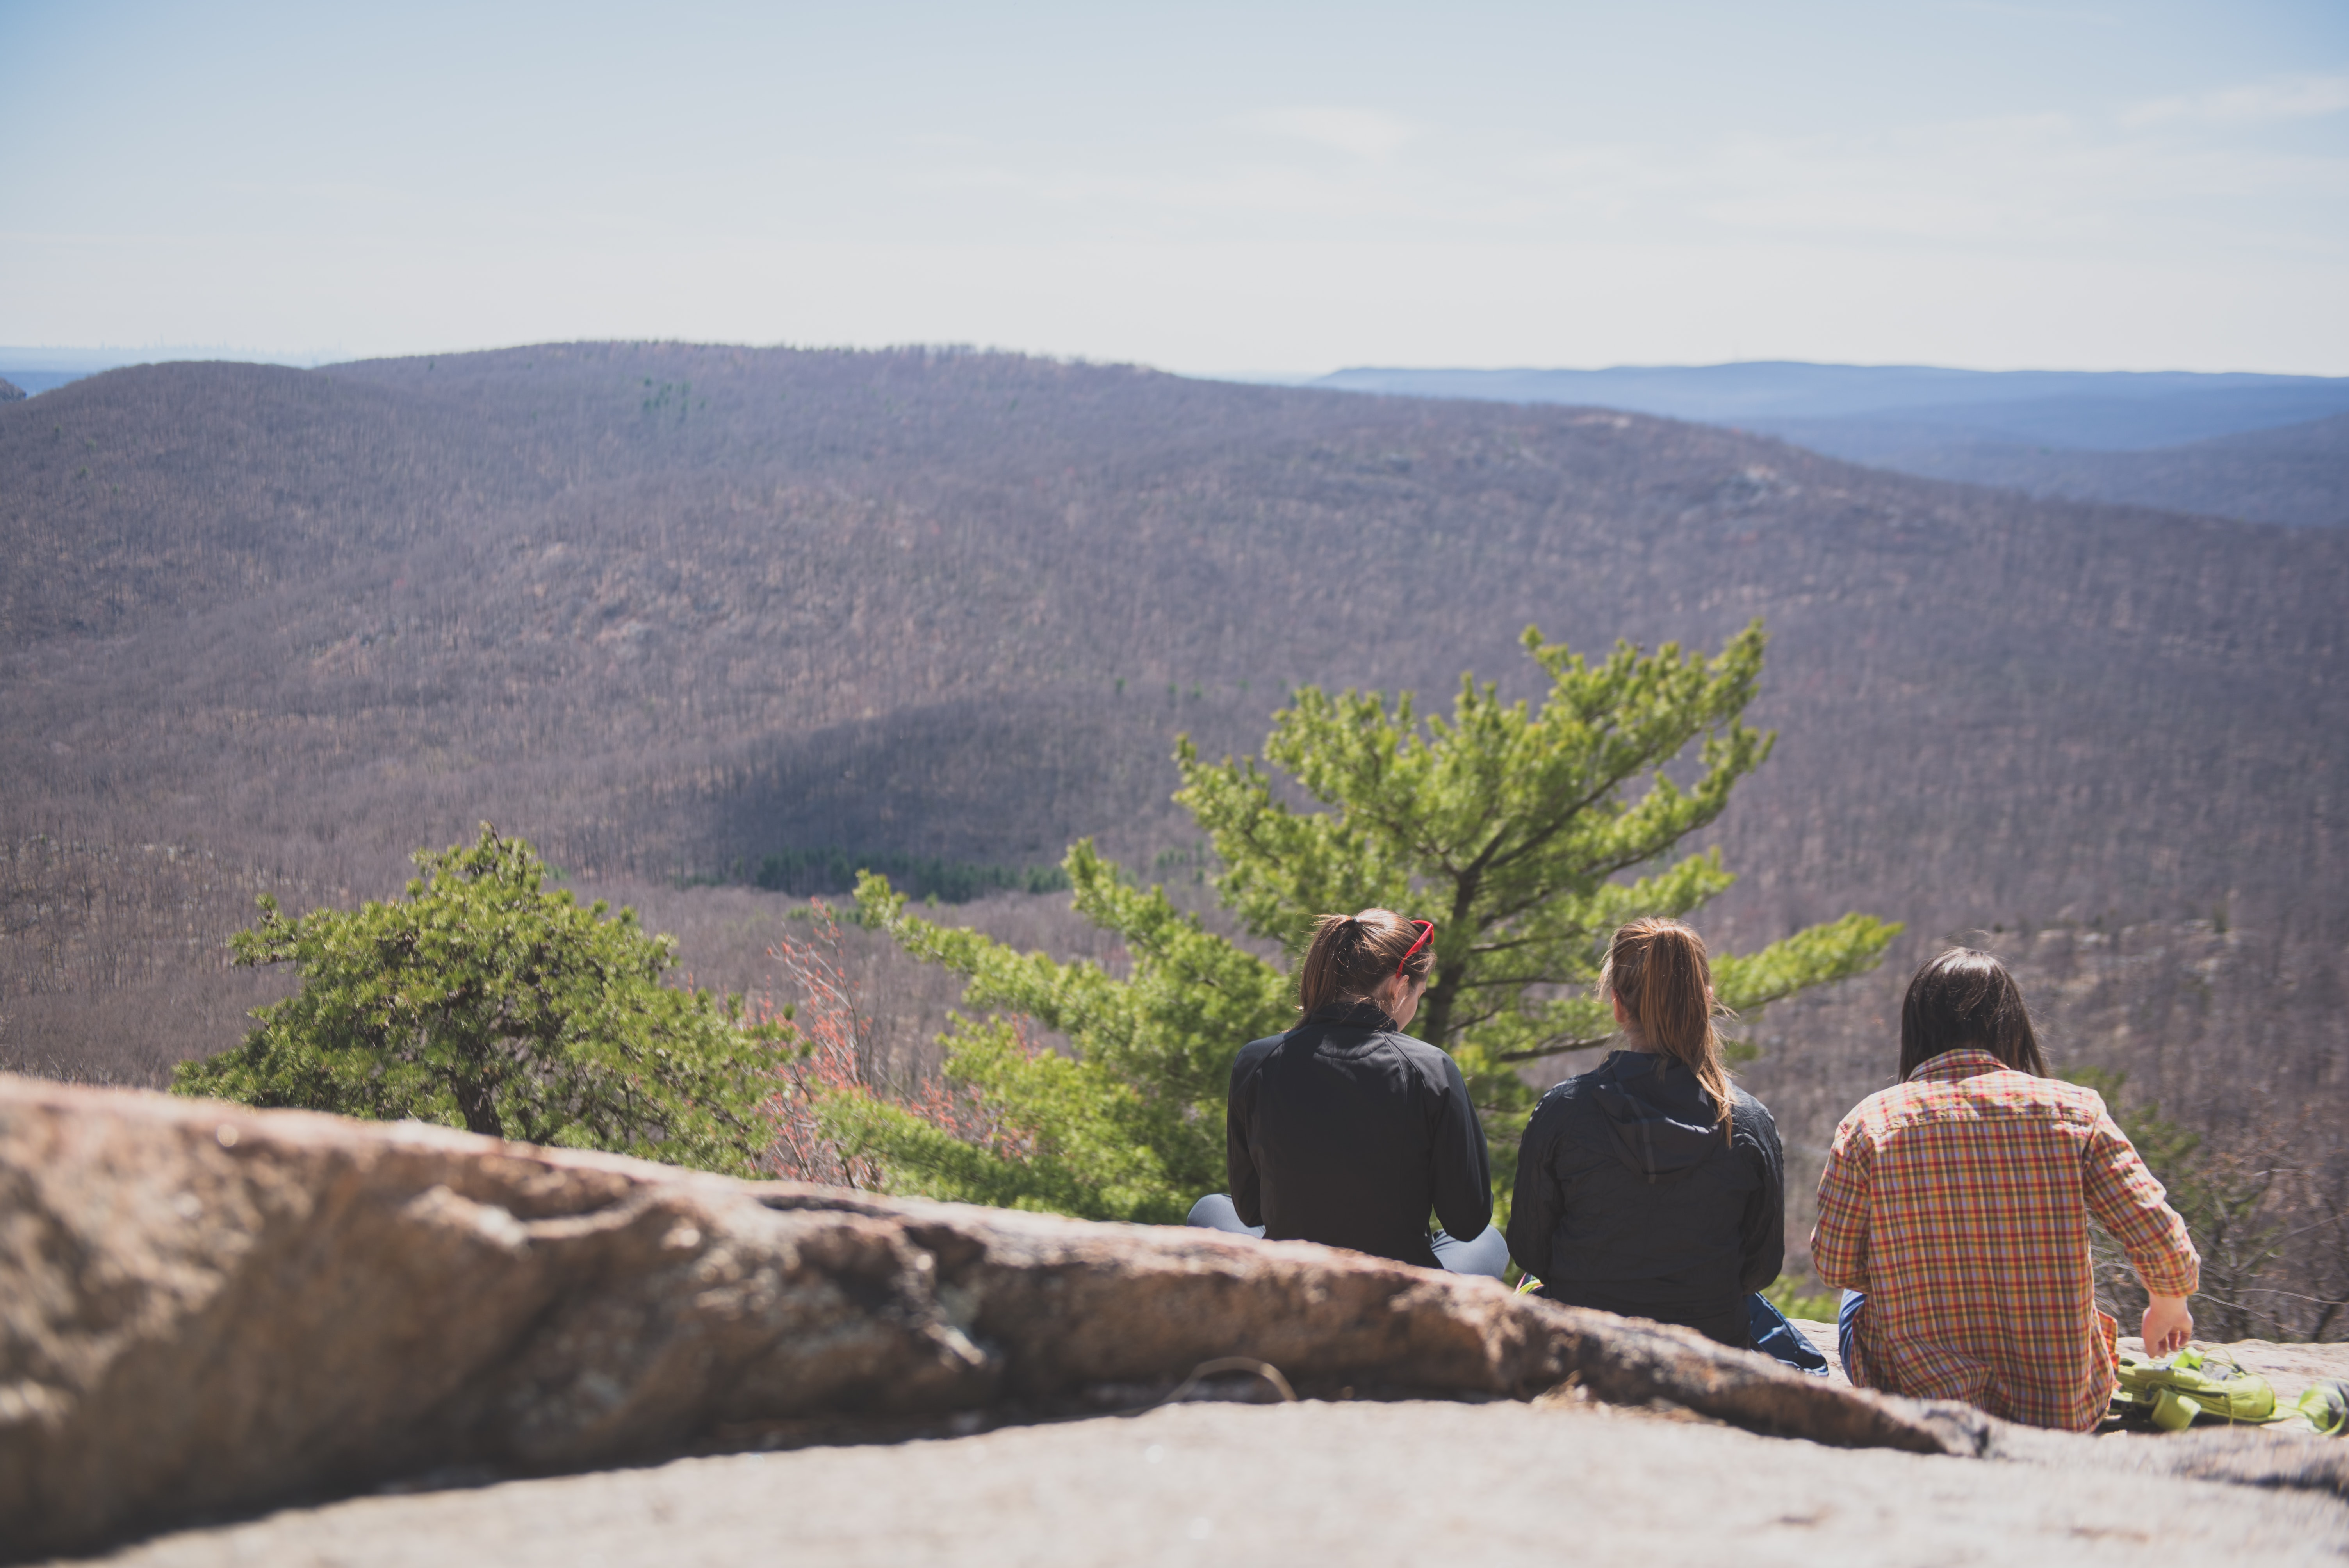 Three female friends sitting on a rock in Bear Mountain Park overlooking hills with leafless trees